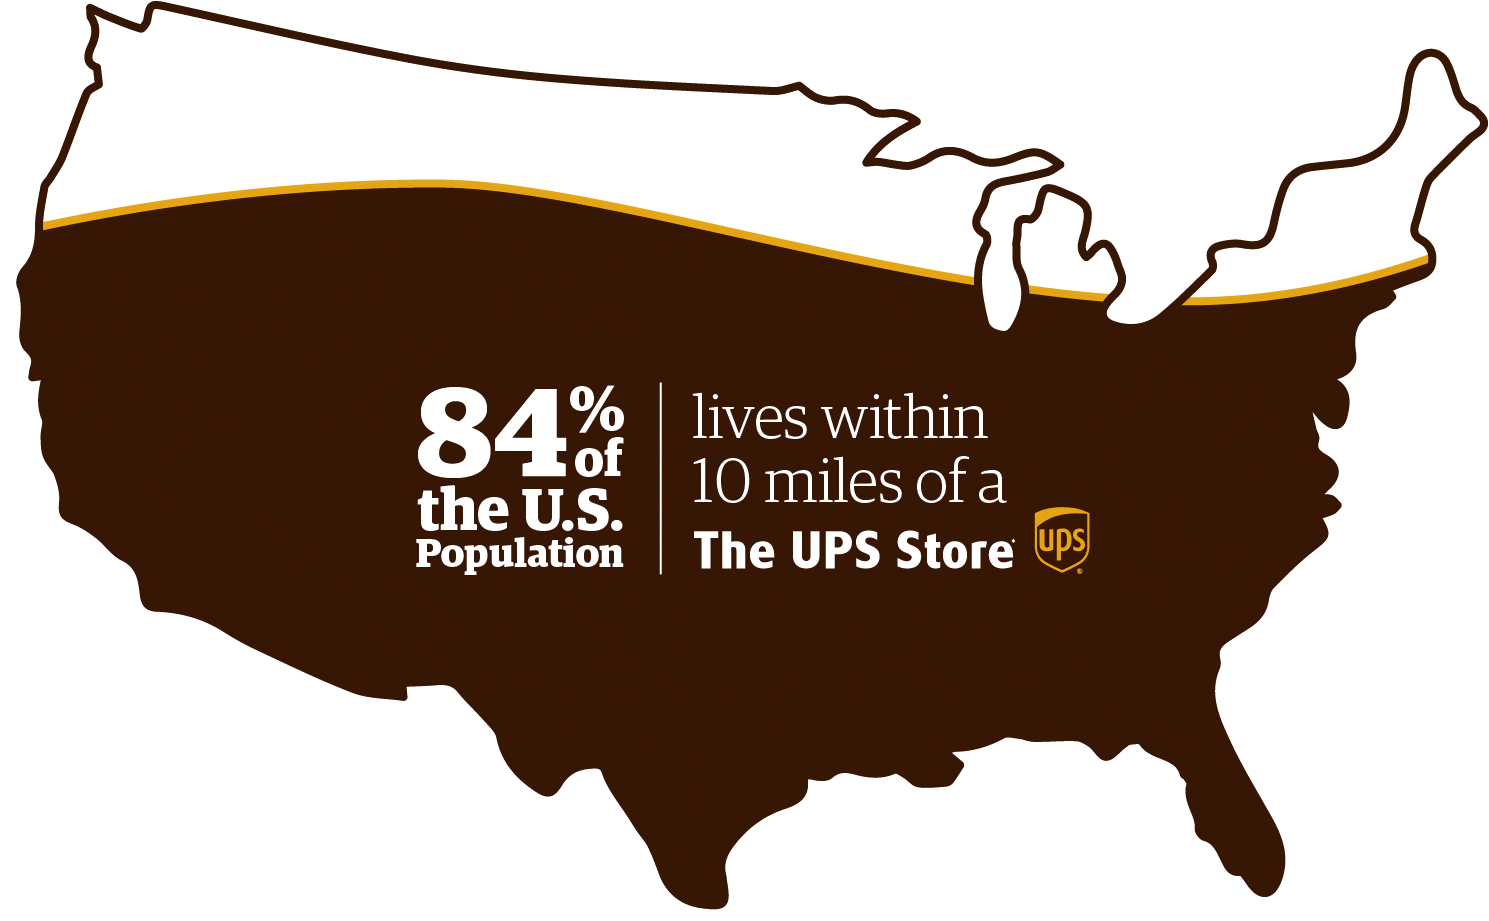 84% of the US population lives within a The UPS Store